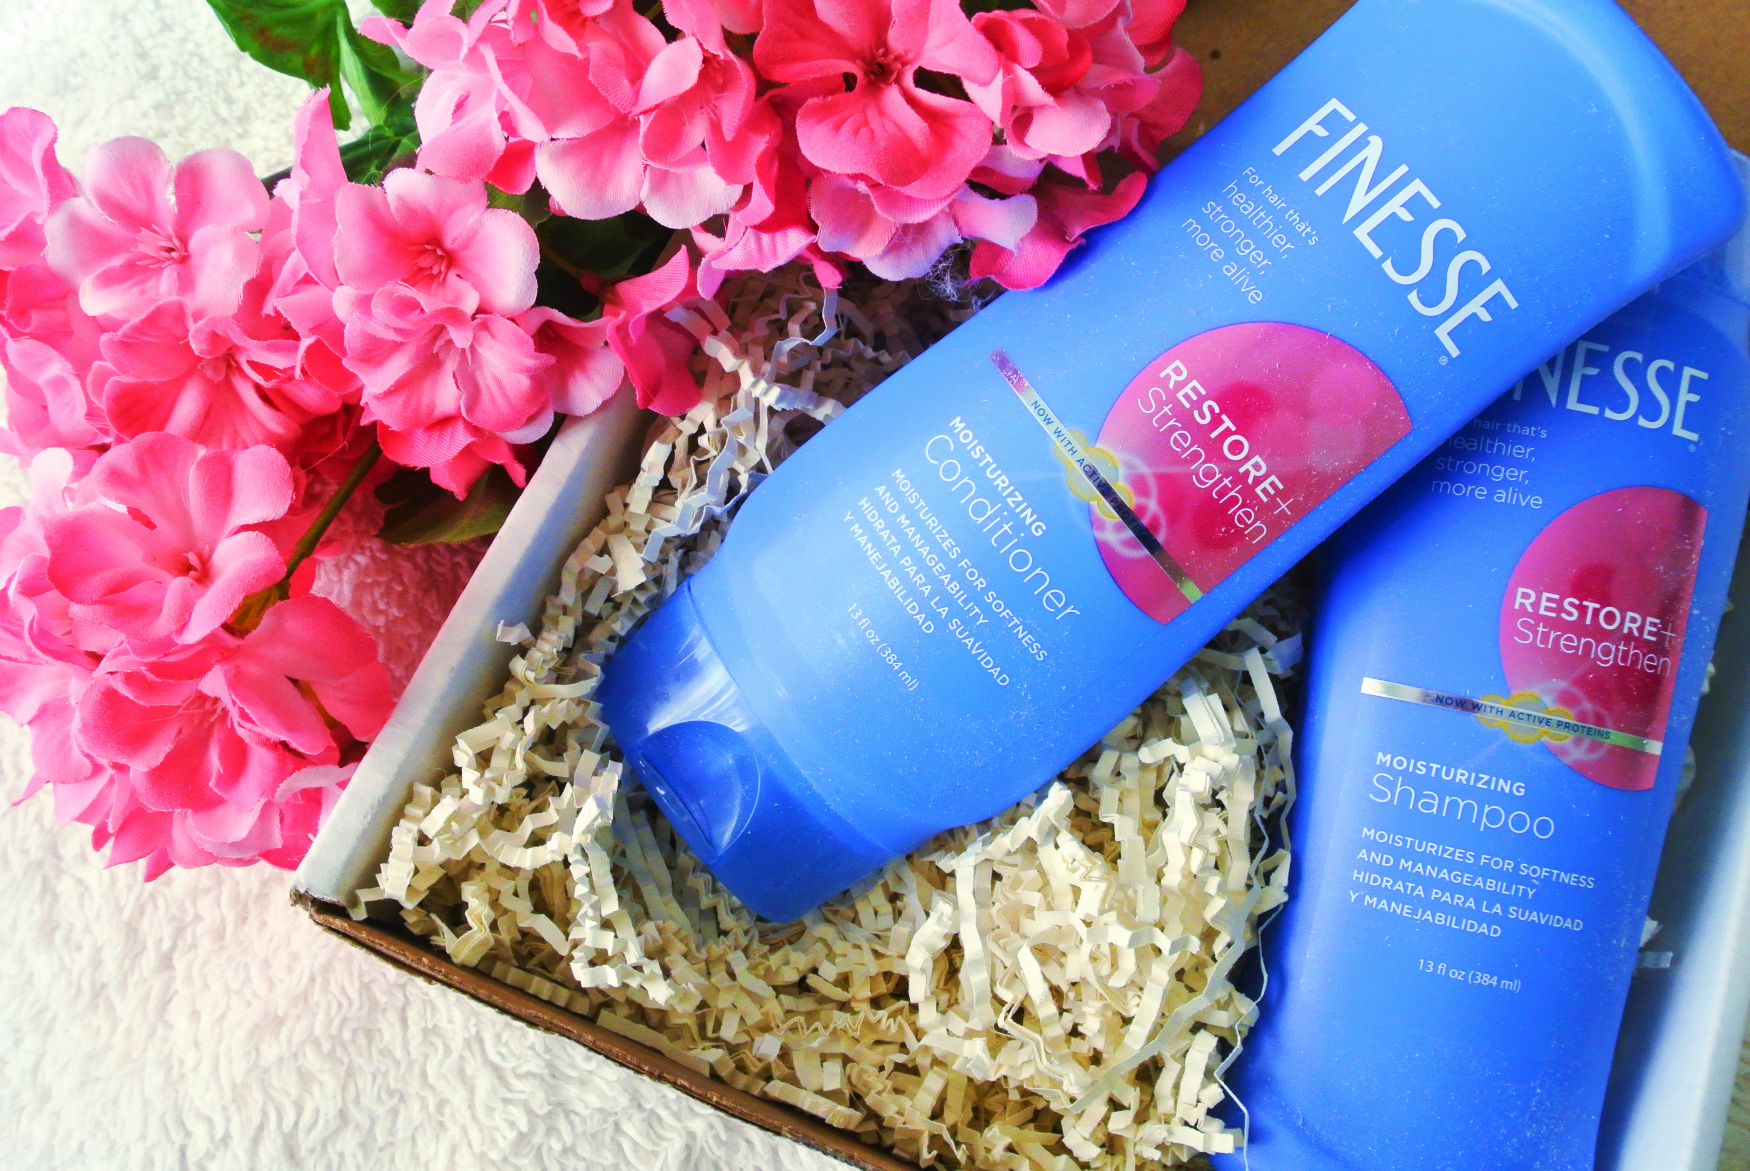 Finesse Haircare Restore + Strengthen Moisturizing Shampoo & Conditioner